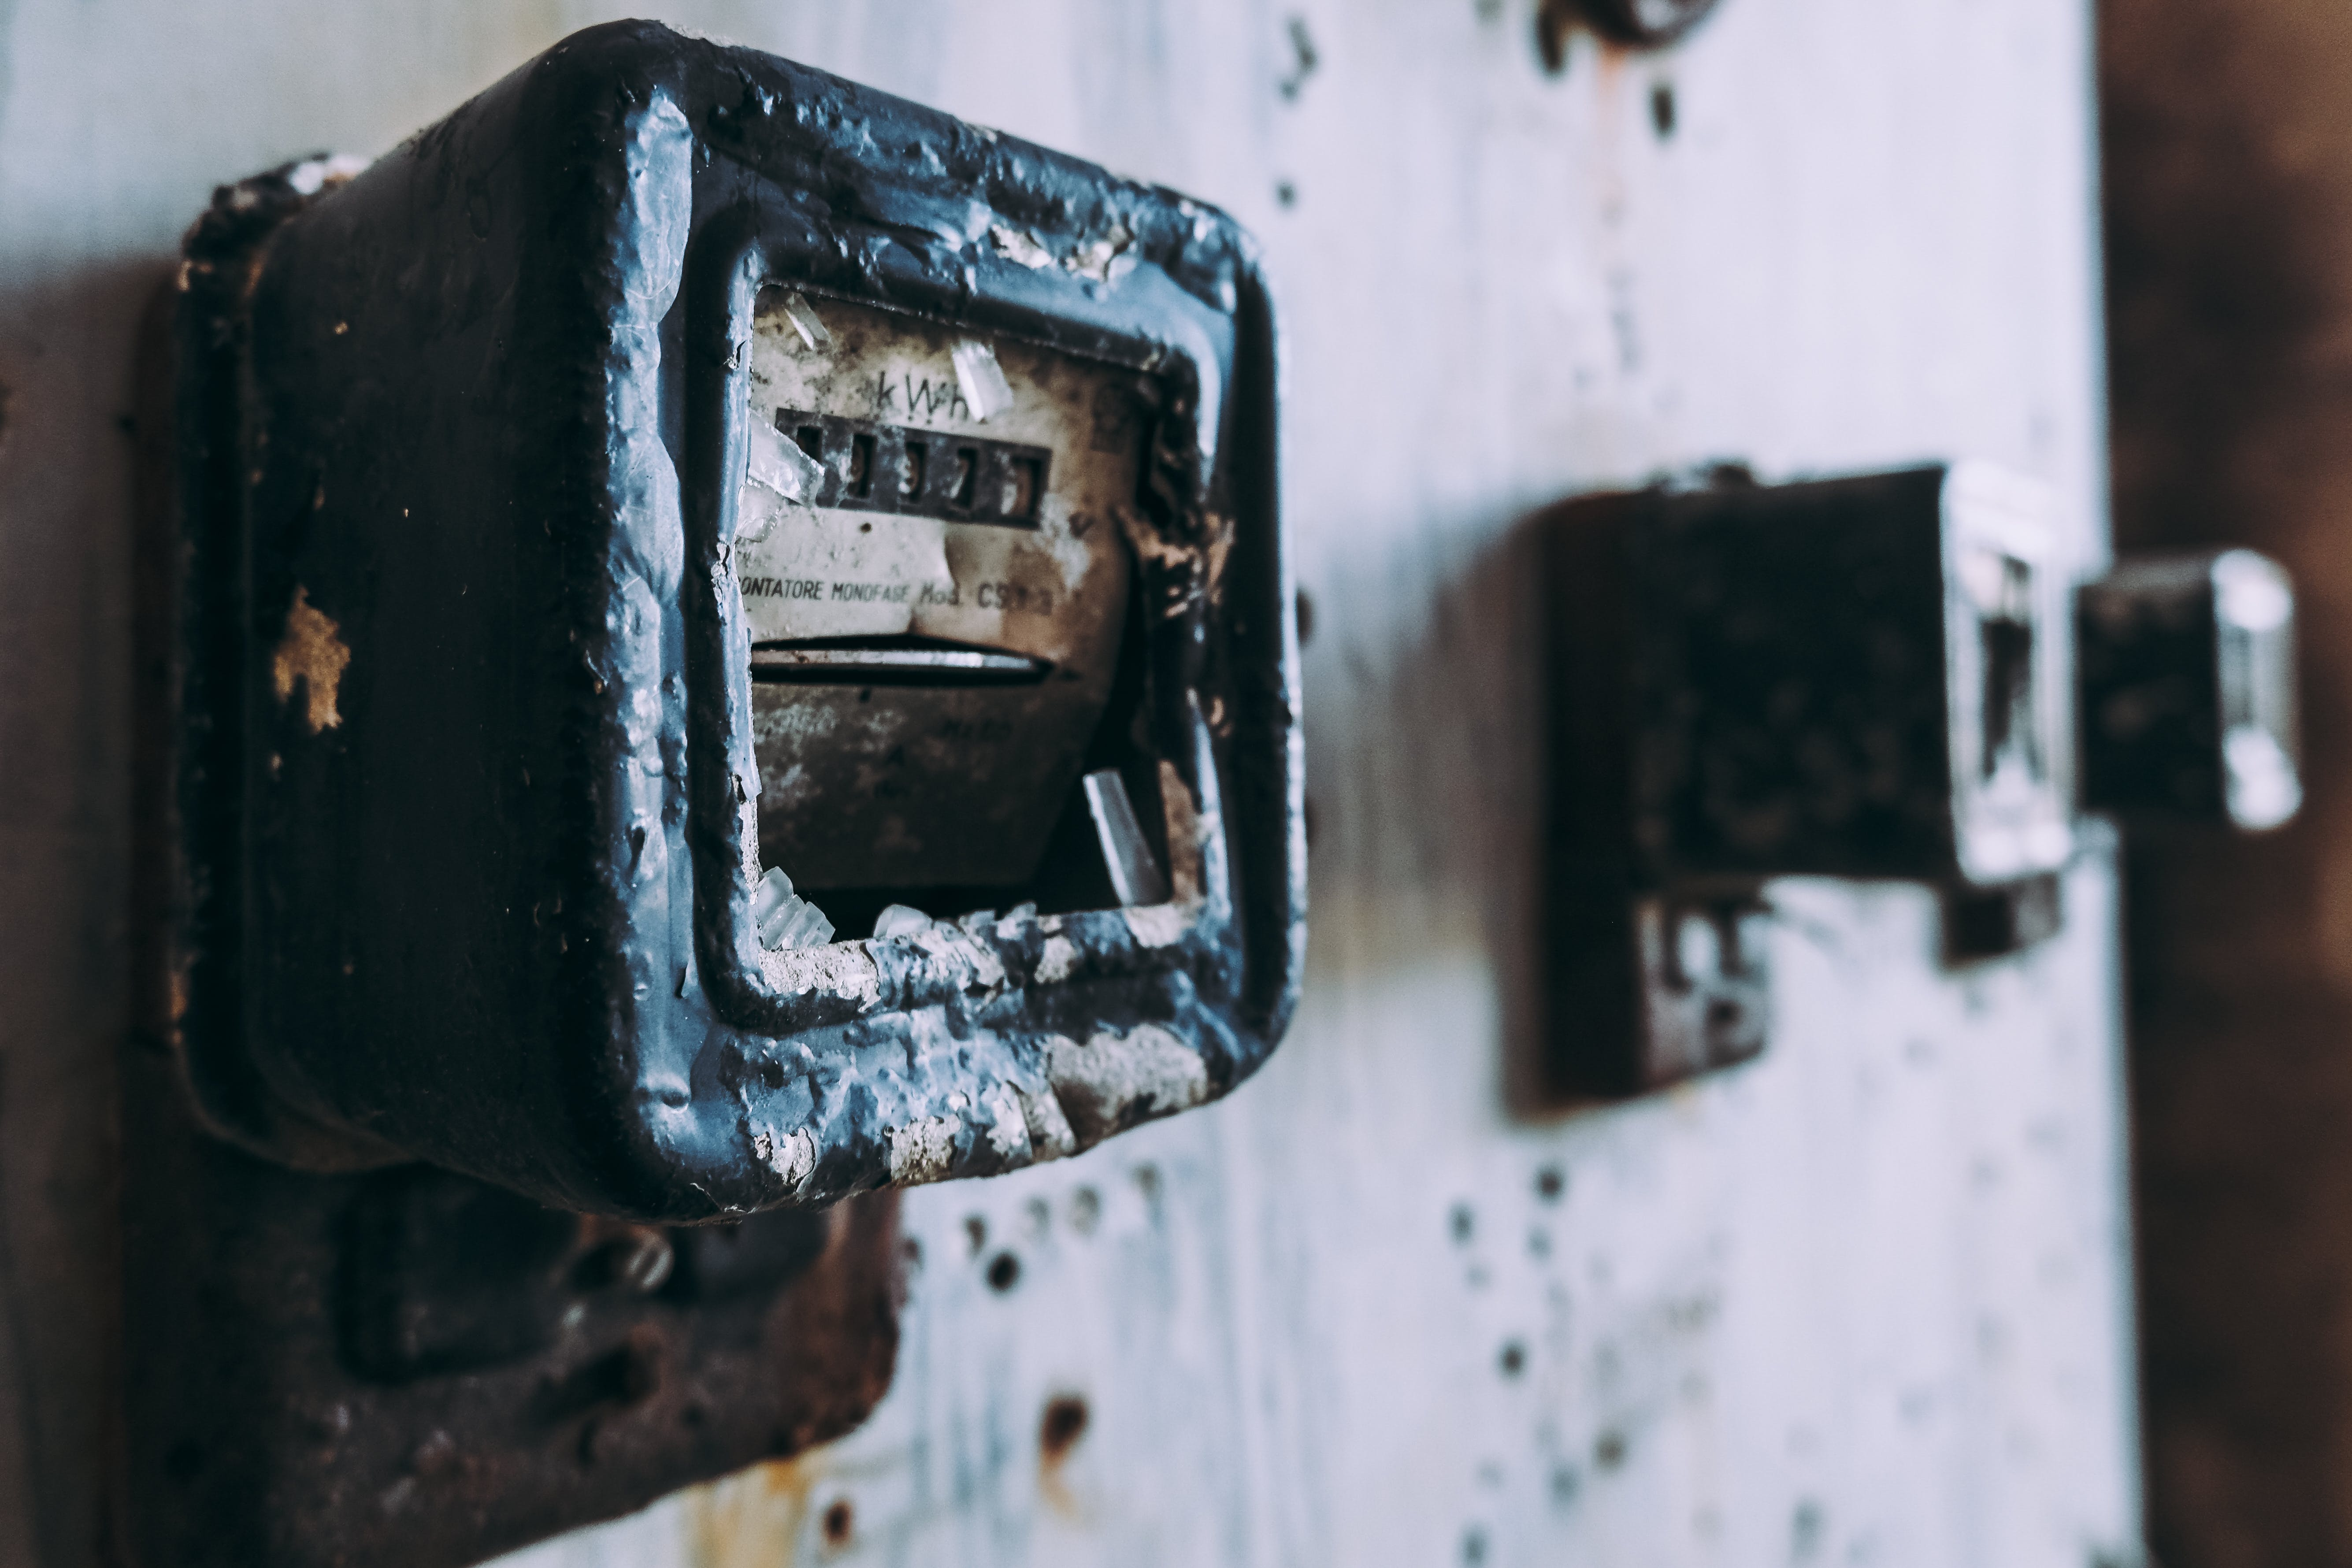 Free stock photo of abandoned, broken, electric meter, electrical cabinet